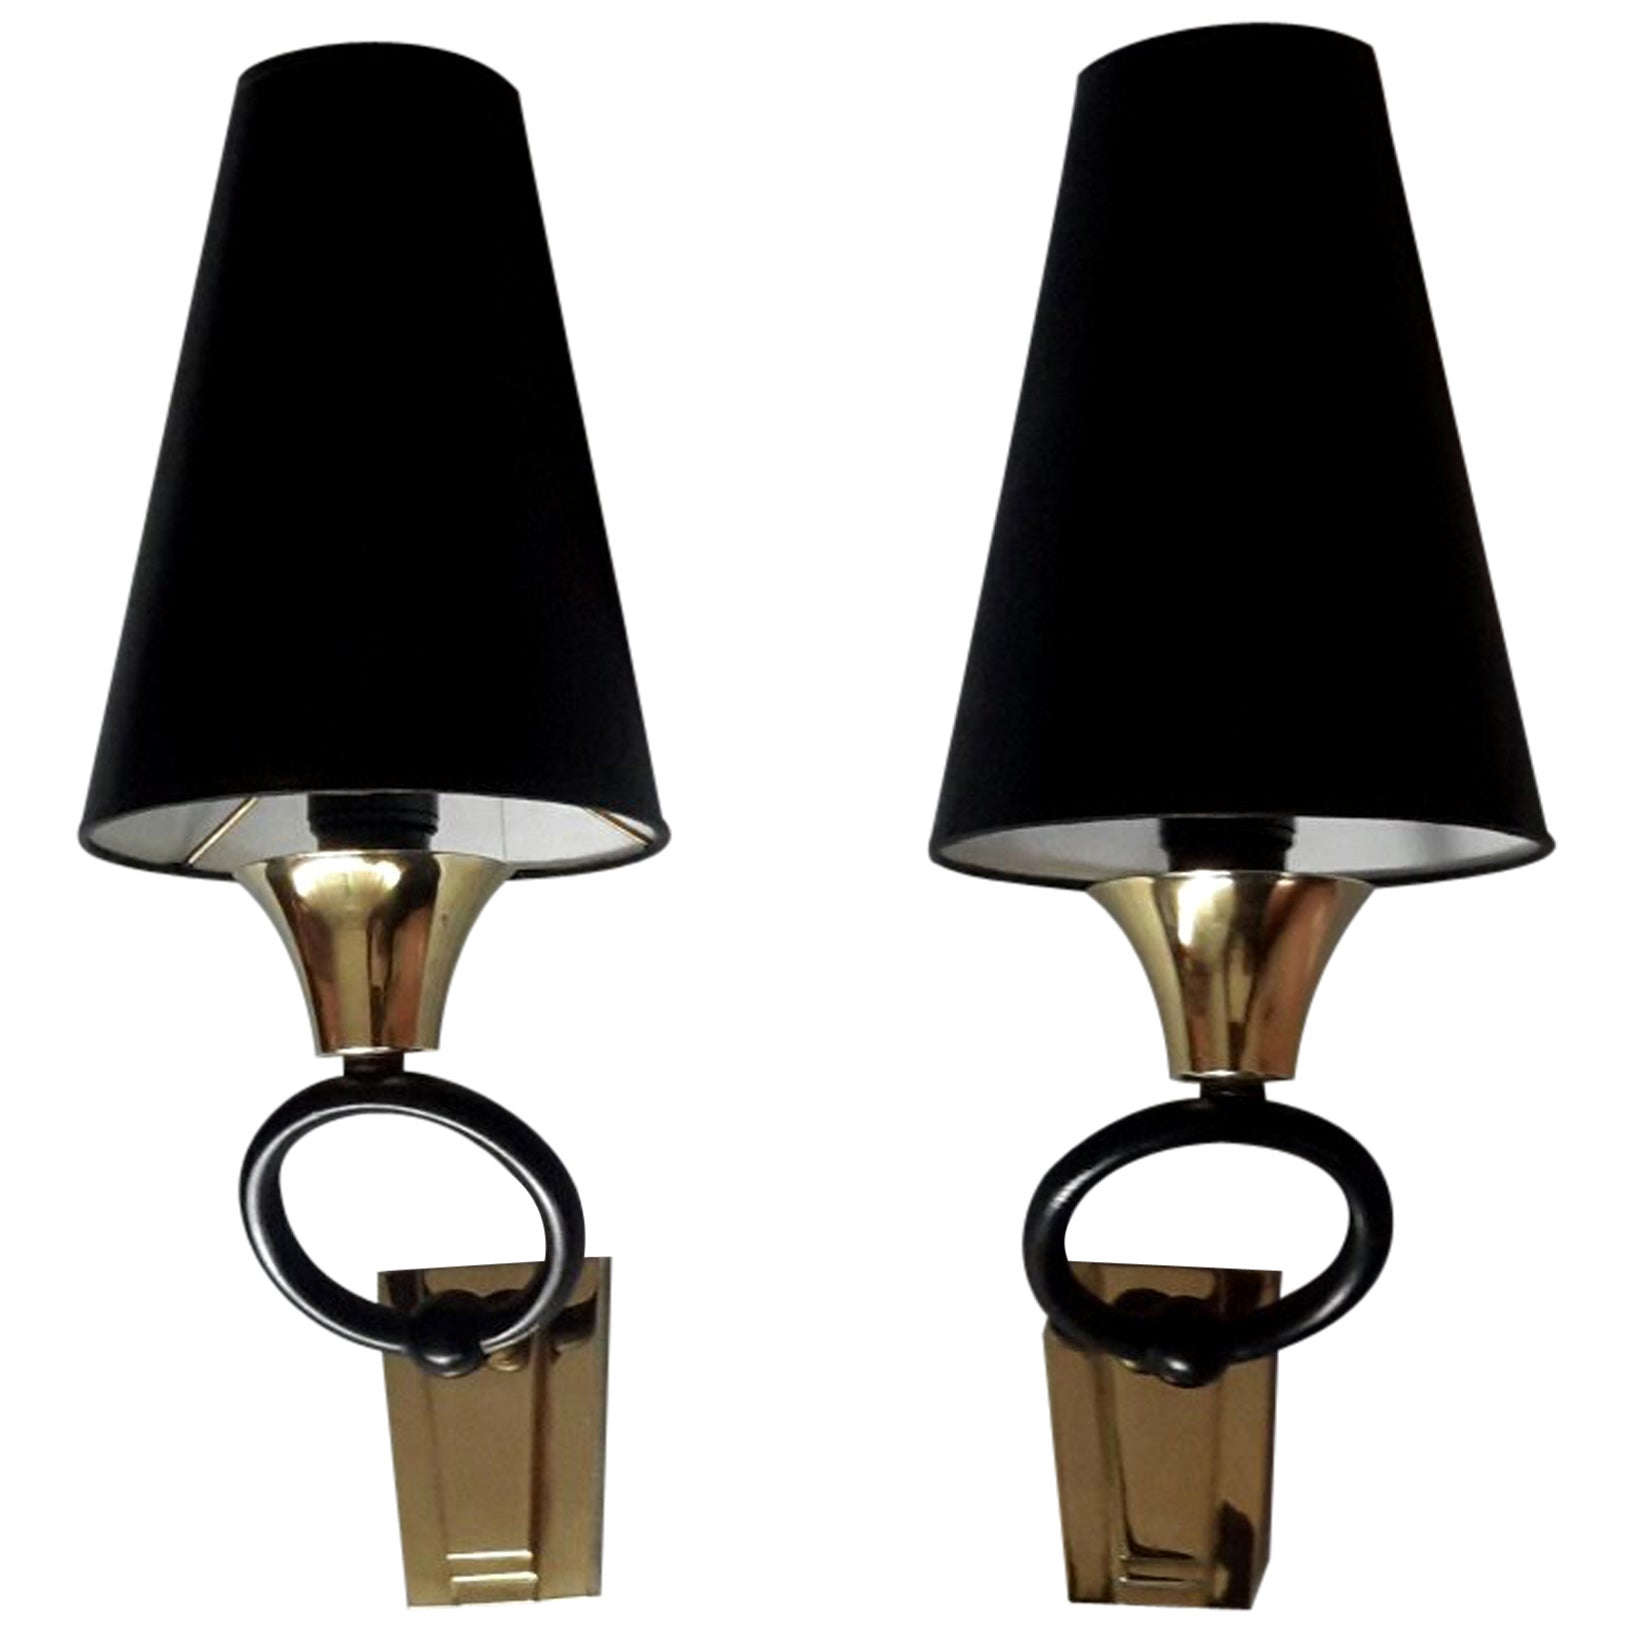 Pair of Neoclassical Sconces, Maison Jansen Style, France, 1950s